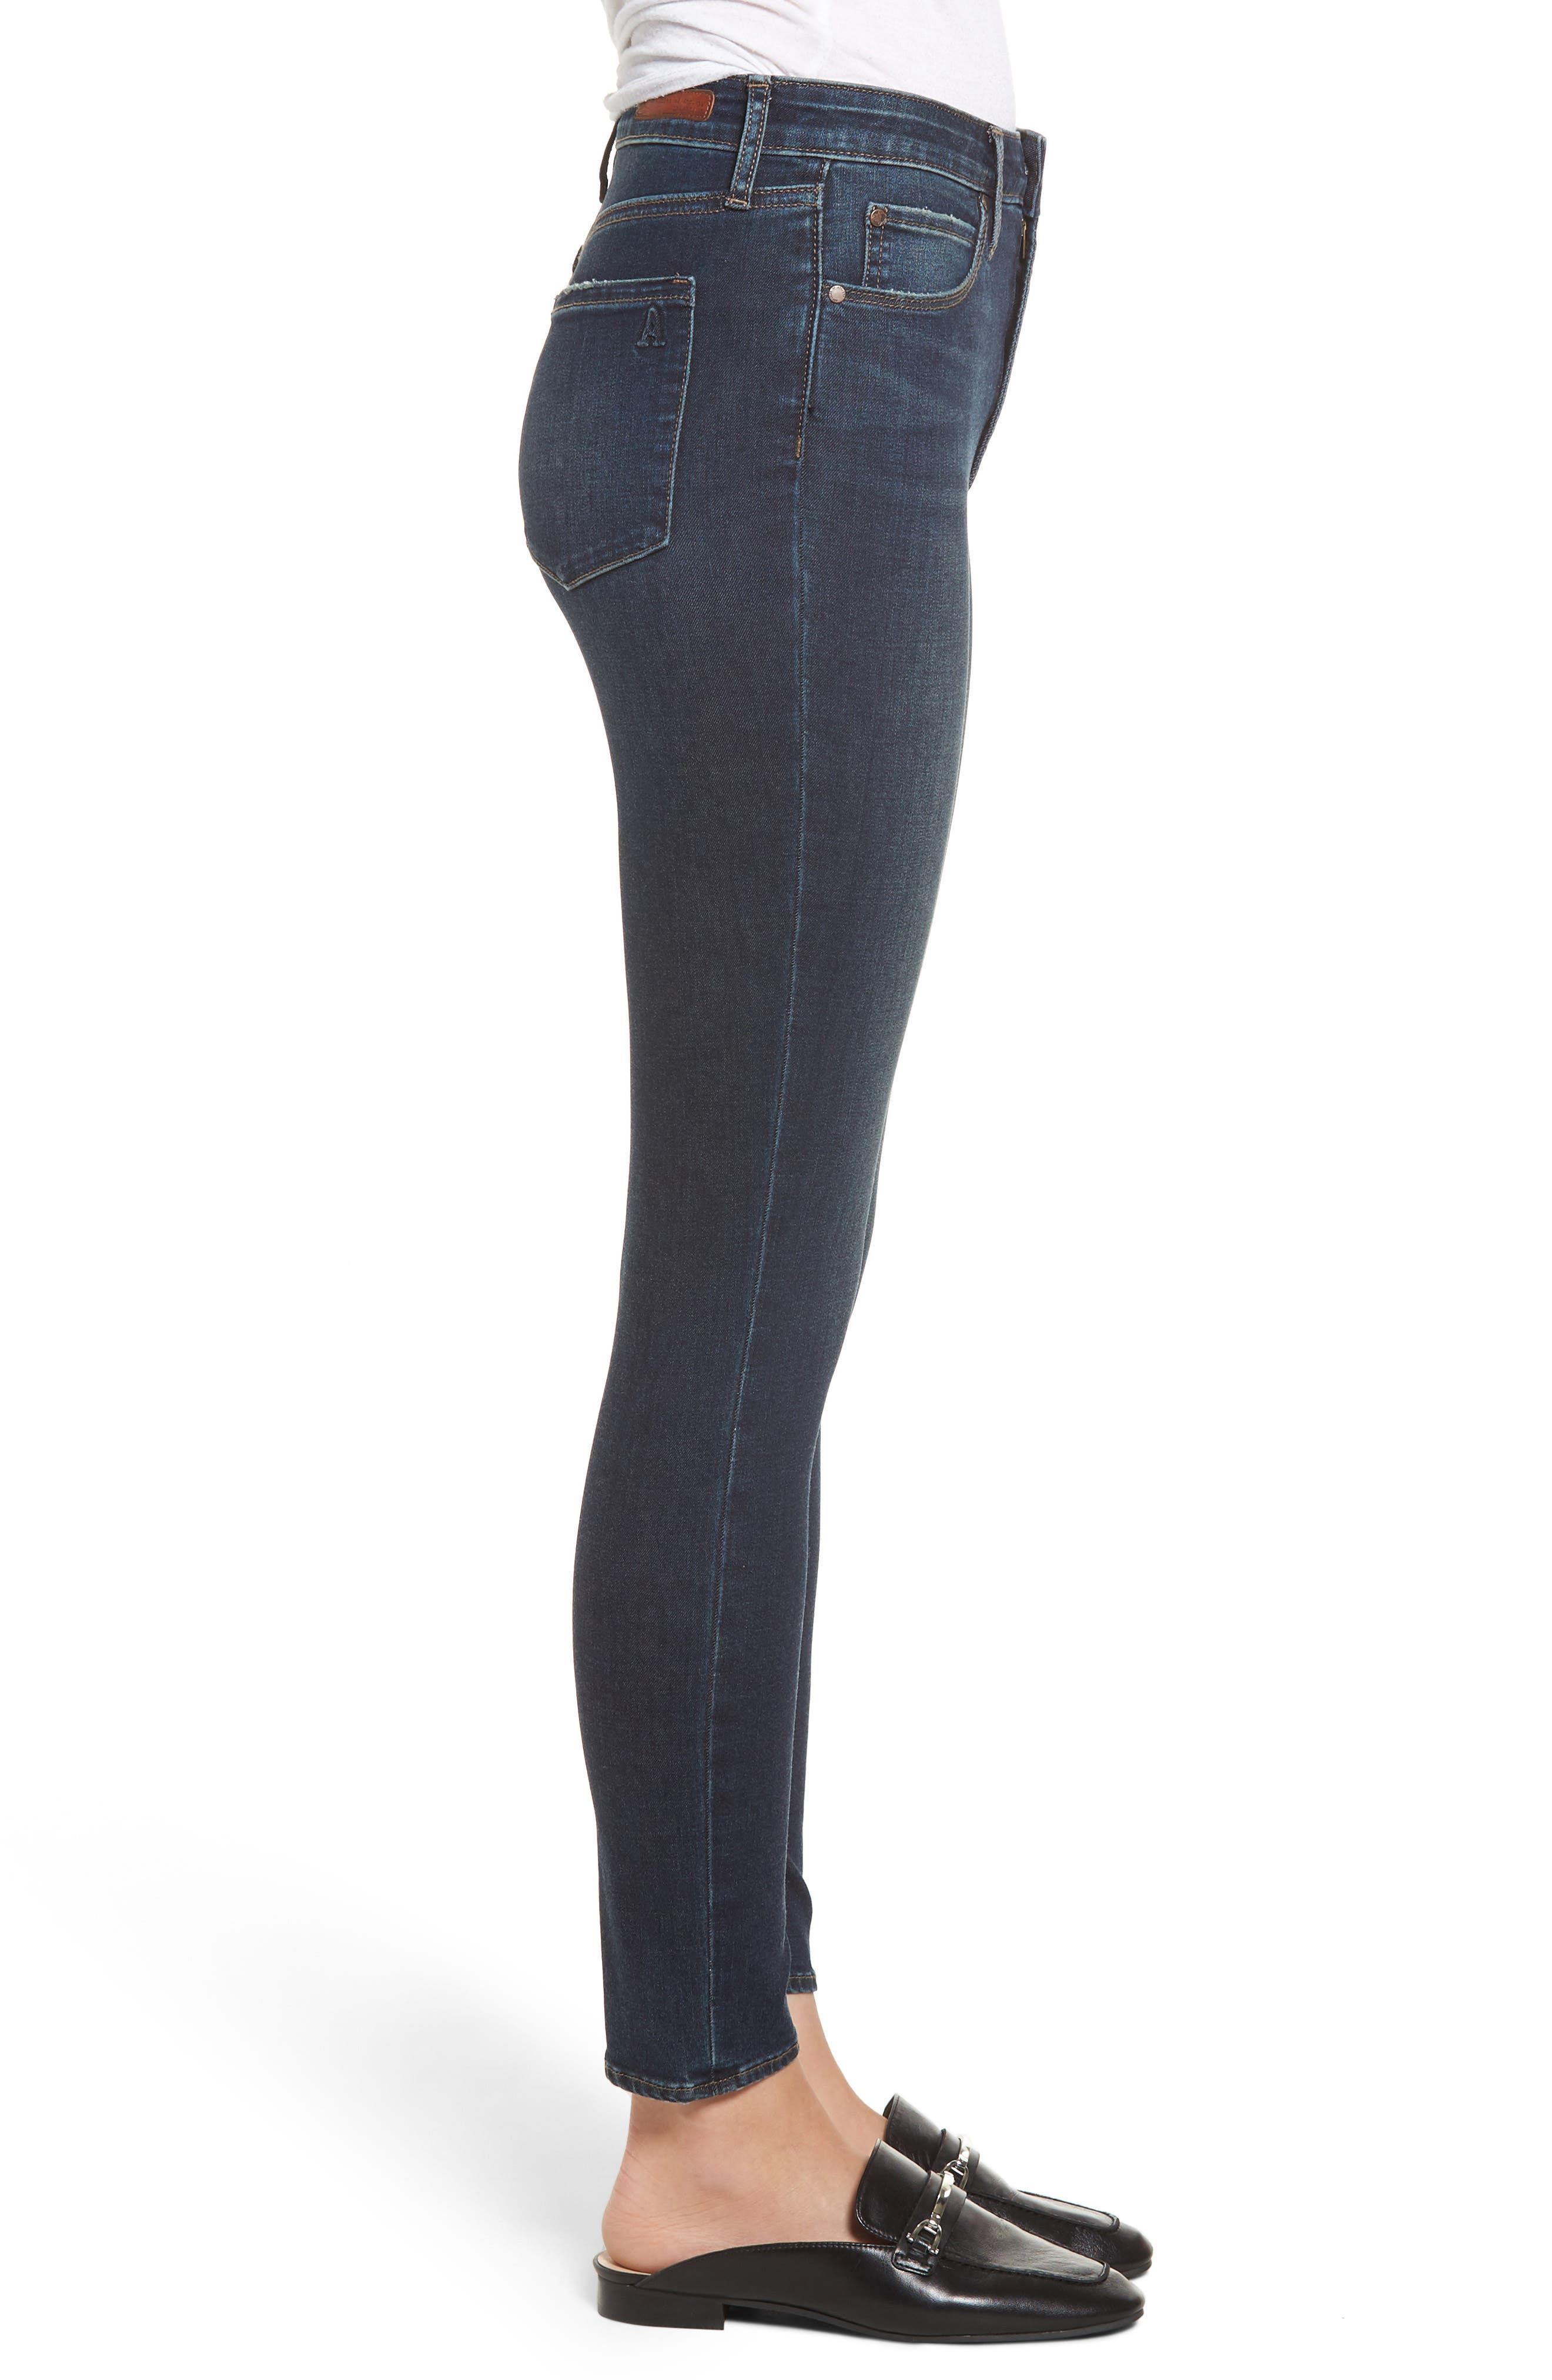 ARTICLES OF SOCIETY, Heather High Waist Ankle Skinny Jeans, Alternate thumbnail 4, color, 461